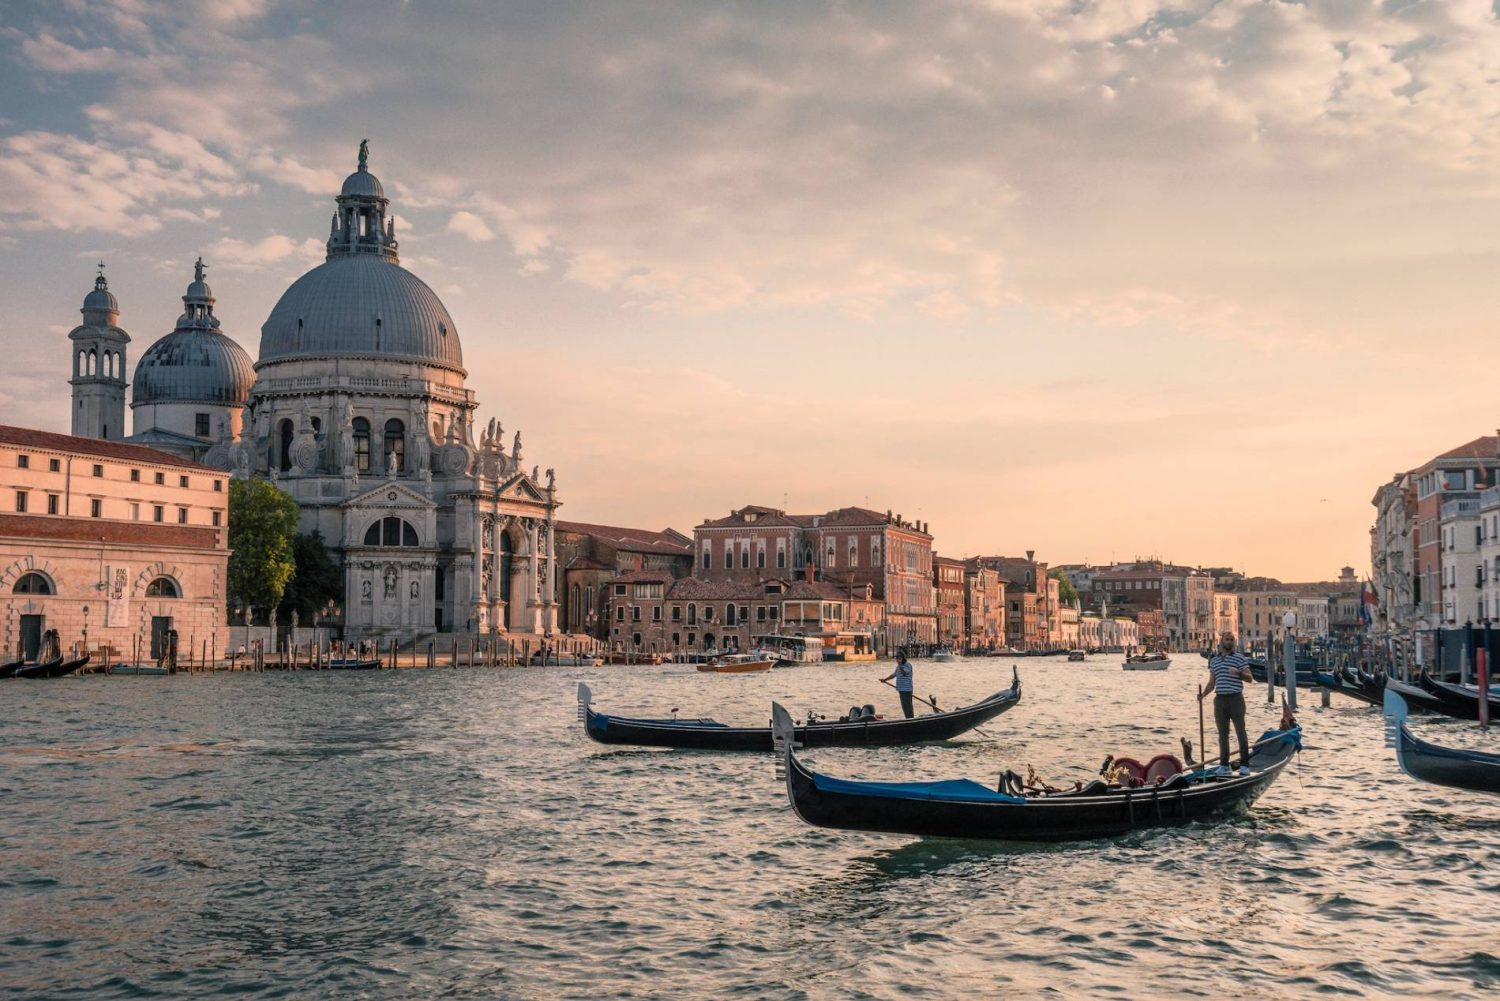 Venice Design Week 2019 Design Guide venice design week 2019 Venice Design Week 2019 Design Guide venice design week 2019 design guide 5